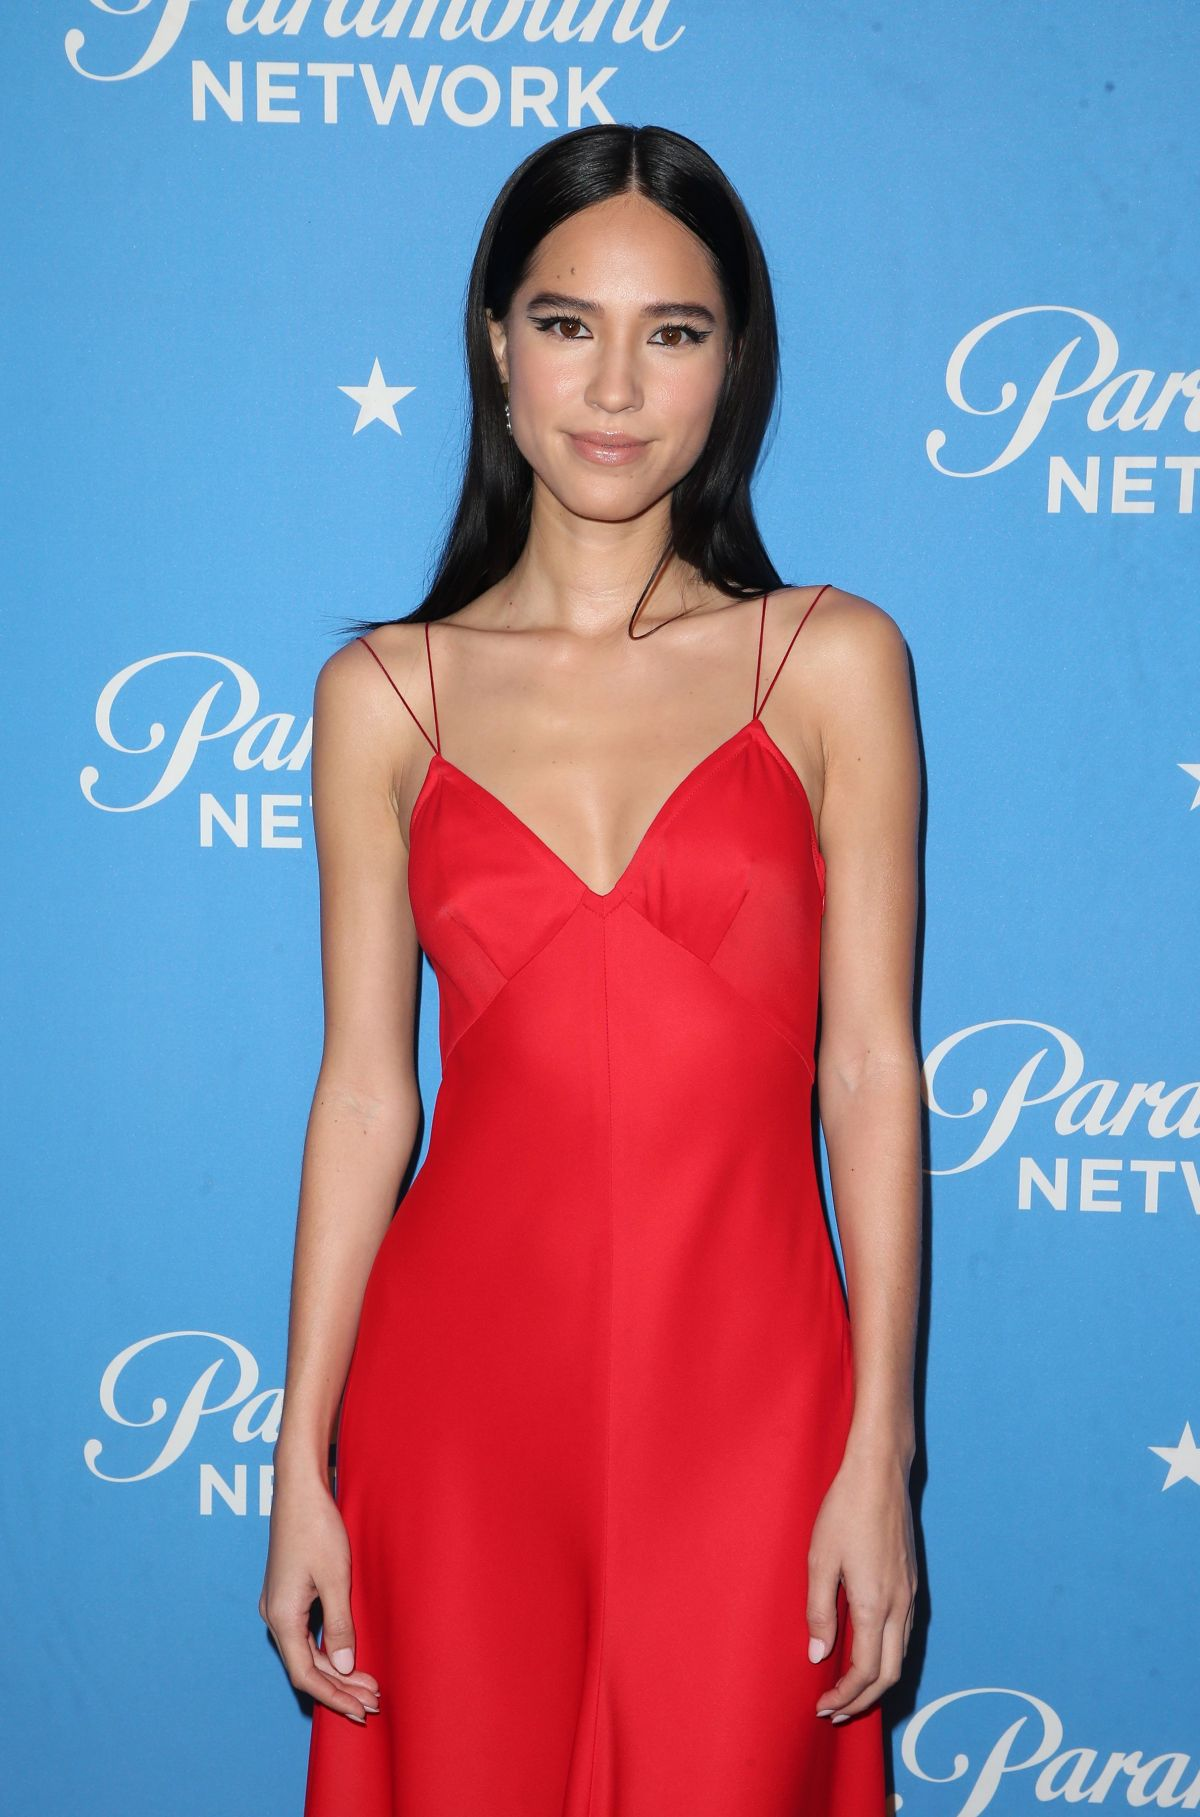 Communication on this topic: Michele Smith (actress), kelsey-chow/